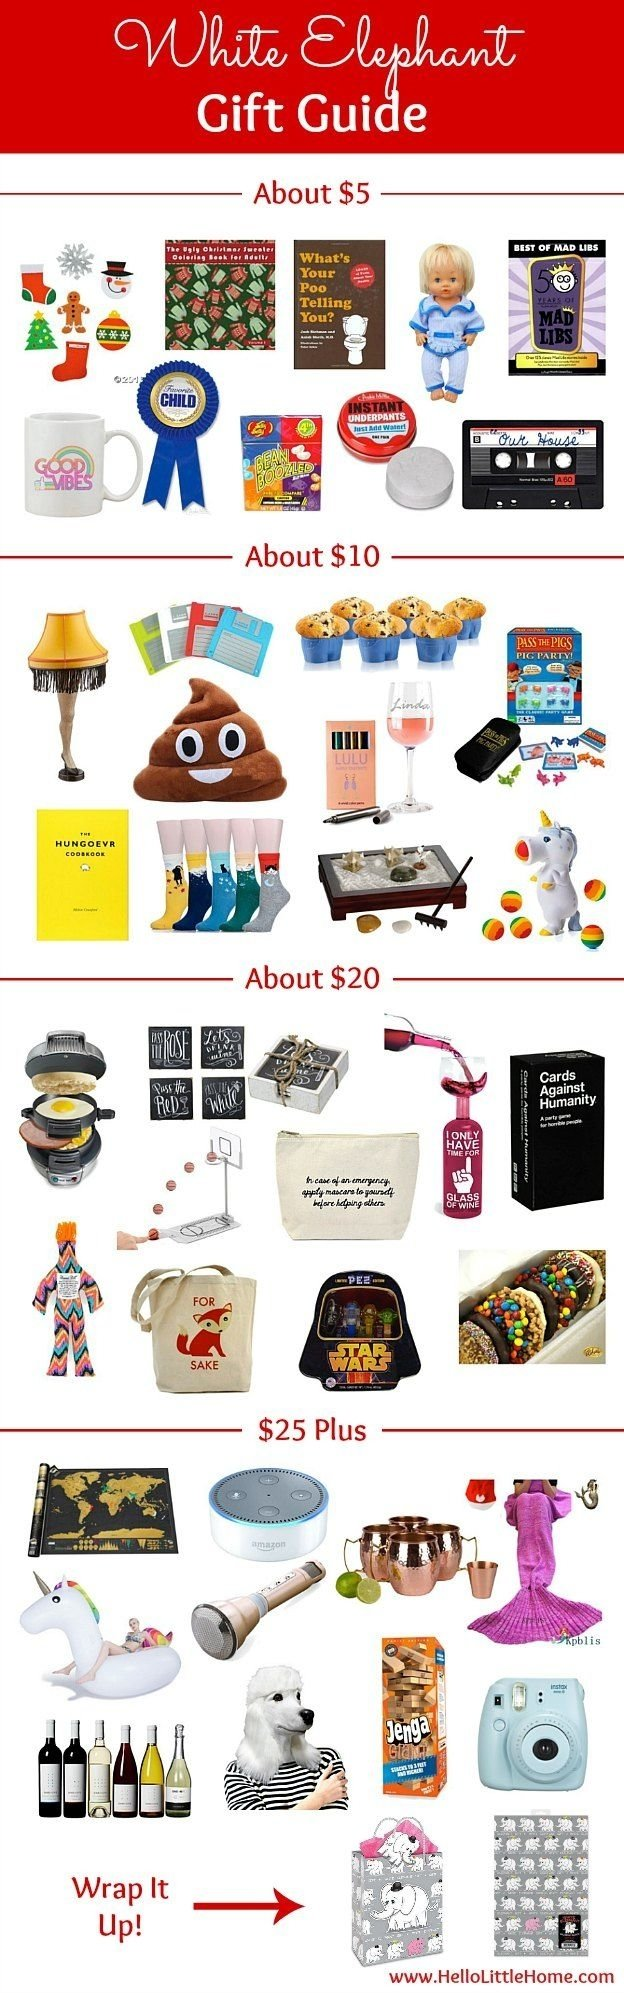 10 Attractive Top White Elephant Gift Ideas white elephant gift guide white elephant gift and holidays 2020